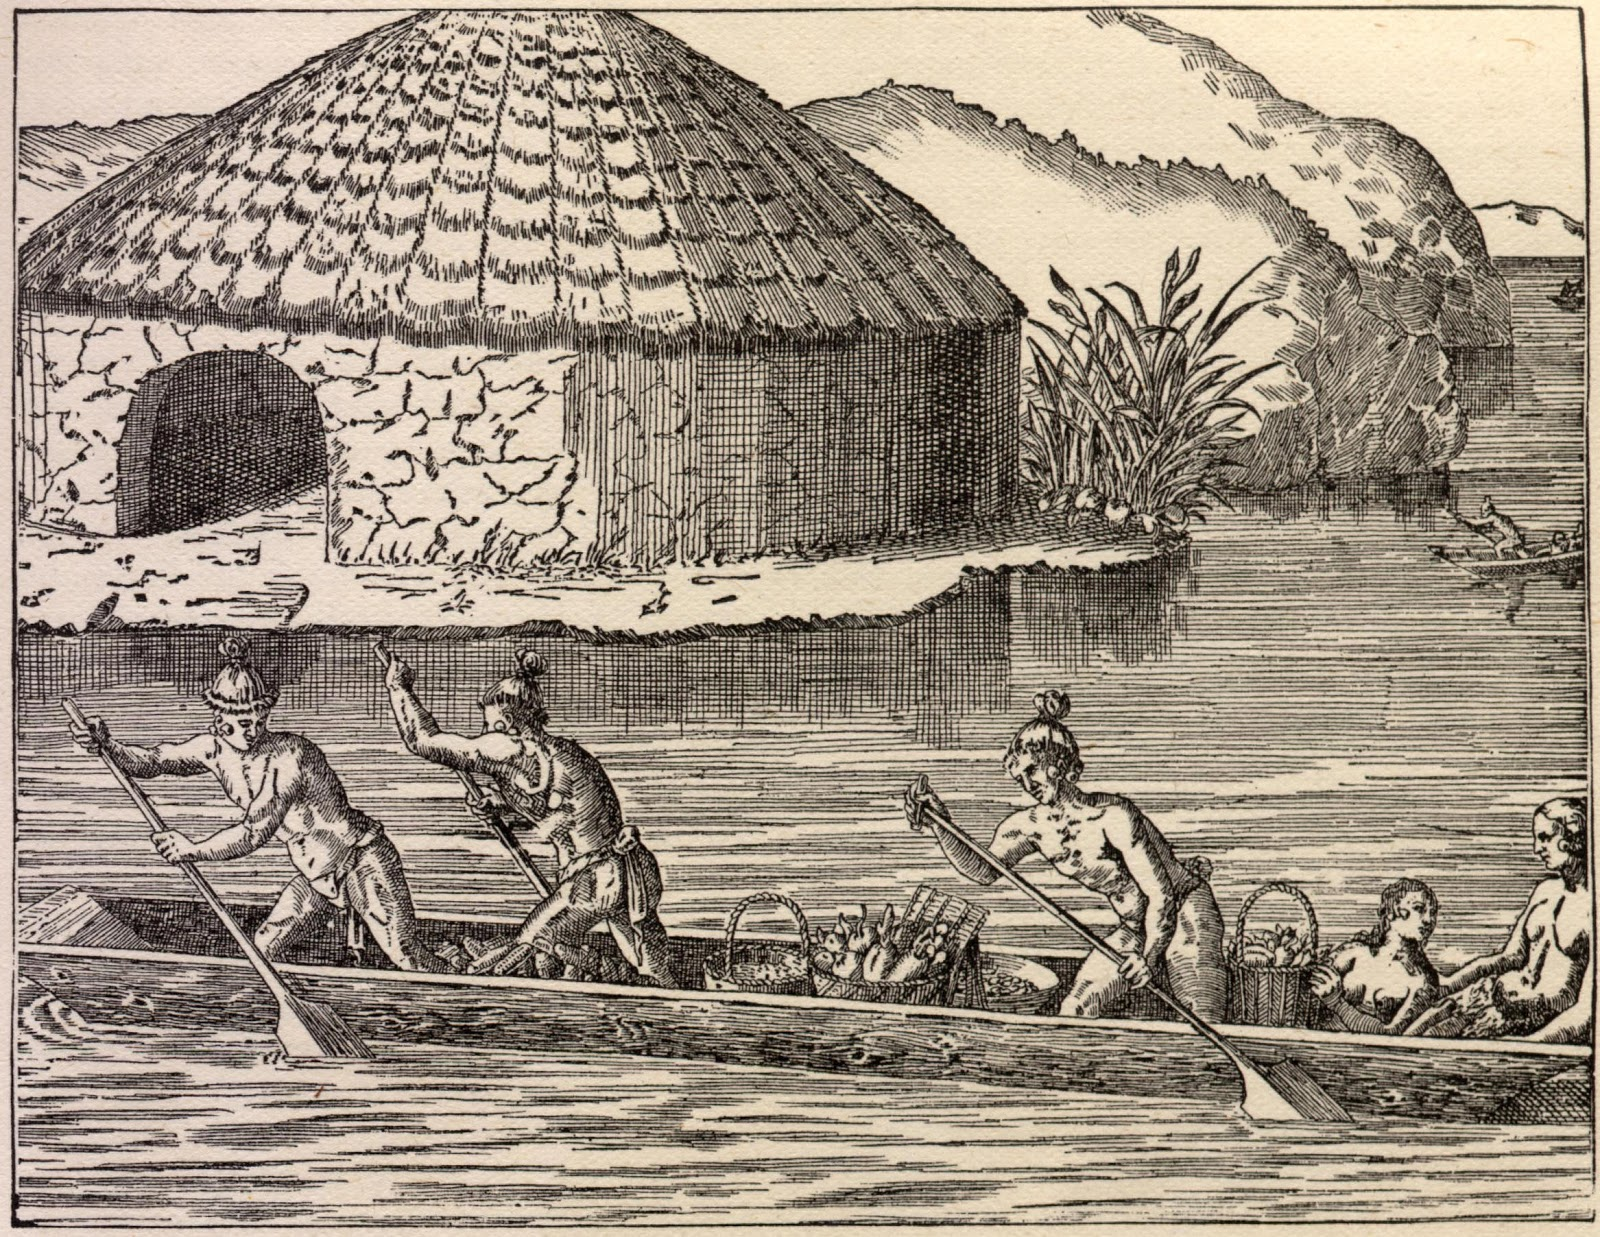 Native American Indian Pictures Indian Picture Gallery Of The Seminole Indian Tribe